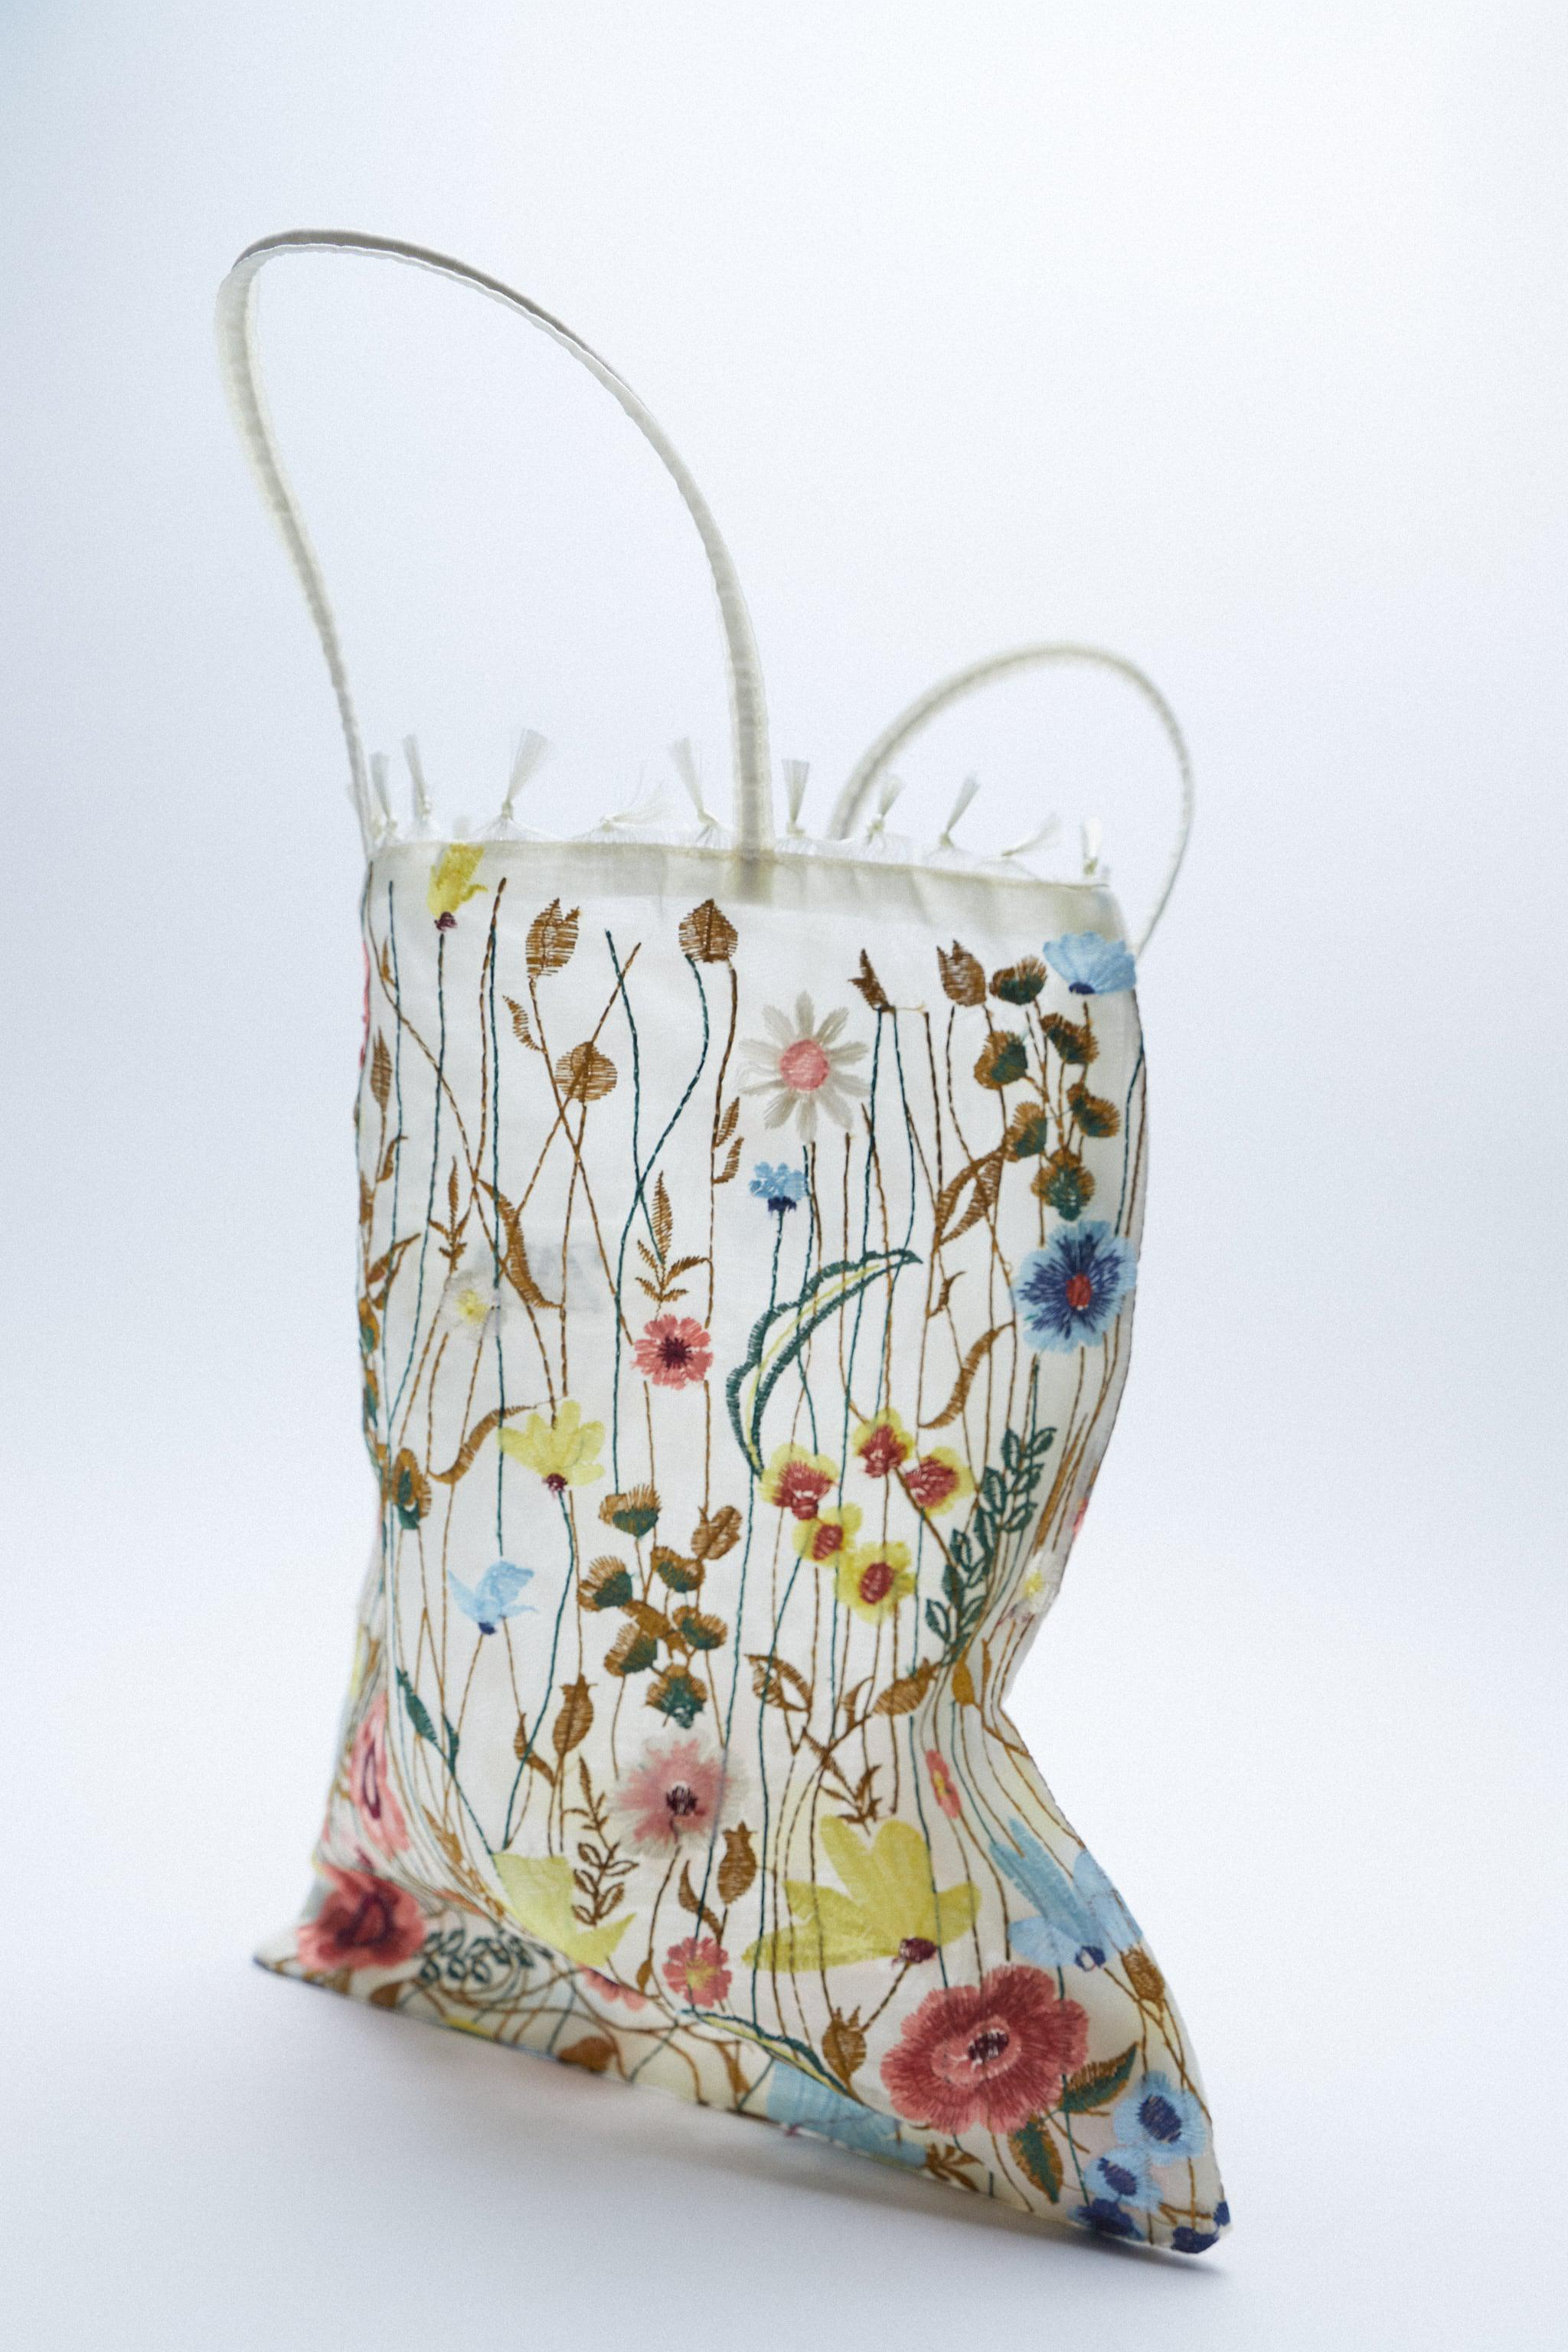 TULLE FLORAL EMBROIDERY TOTE BAG 2